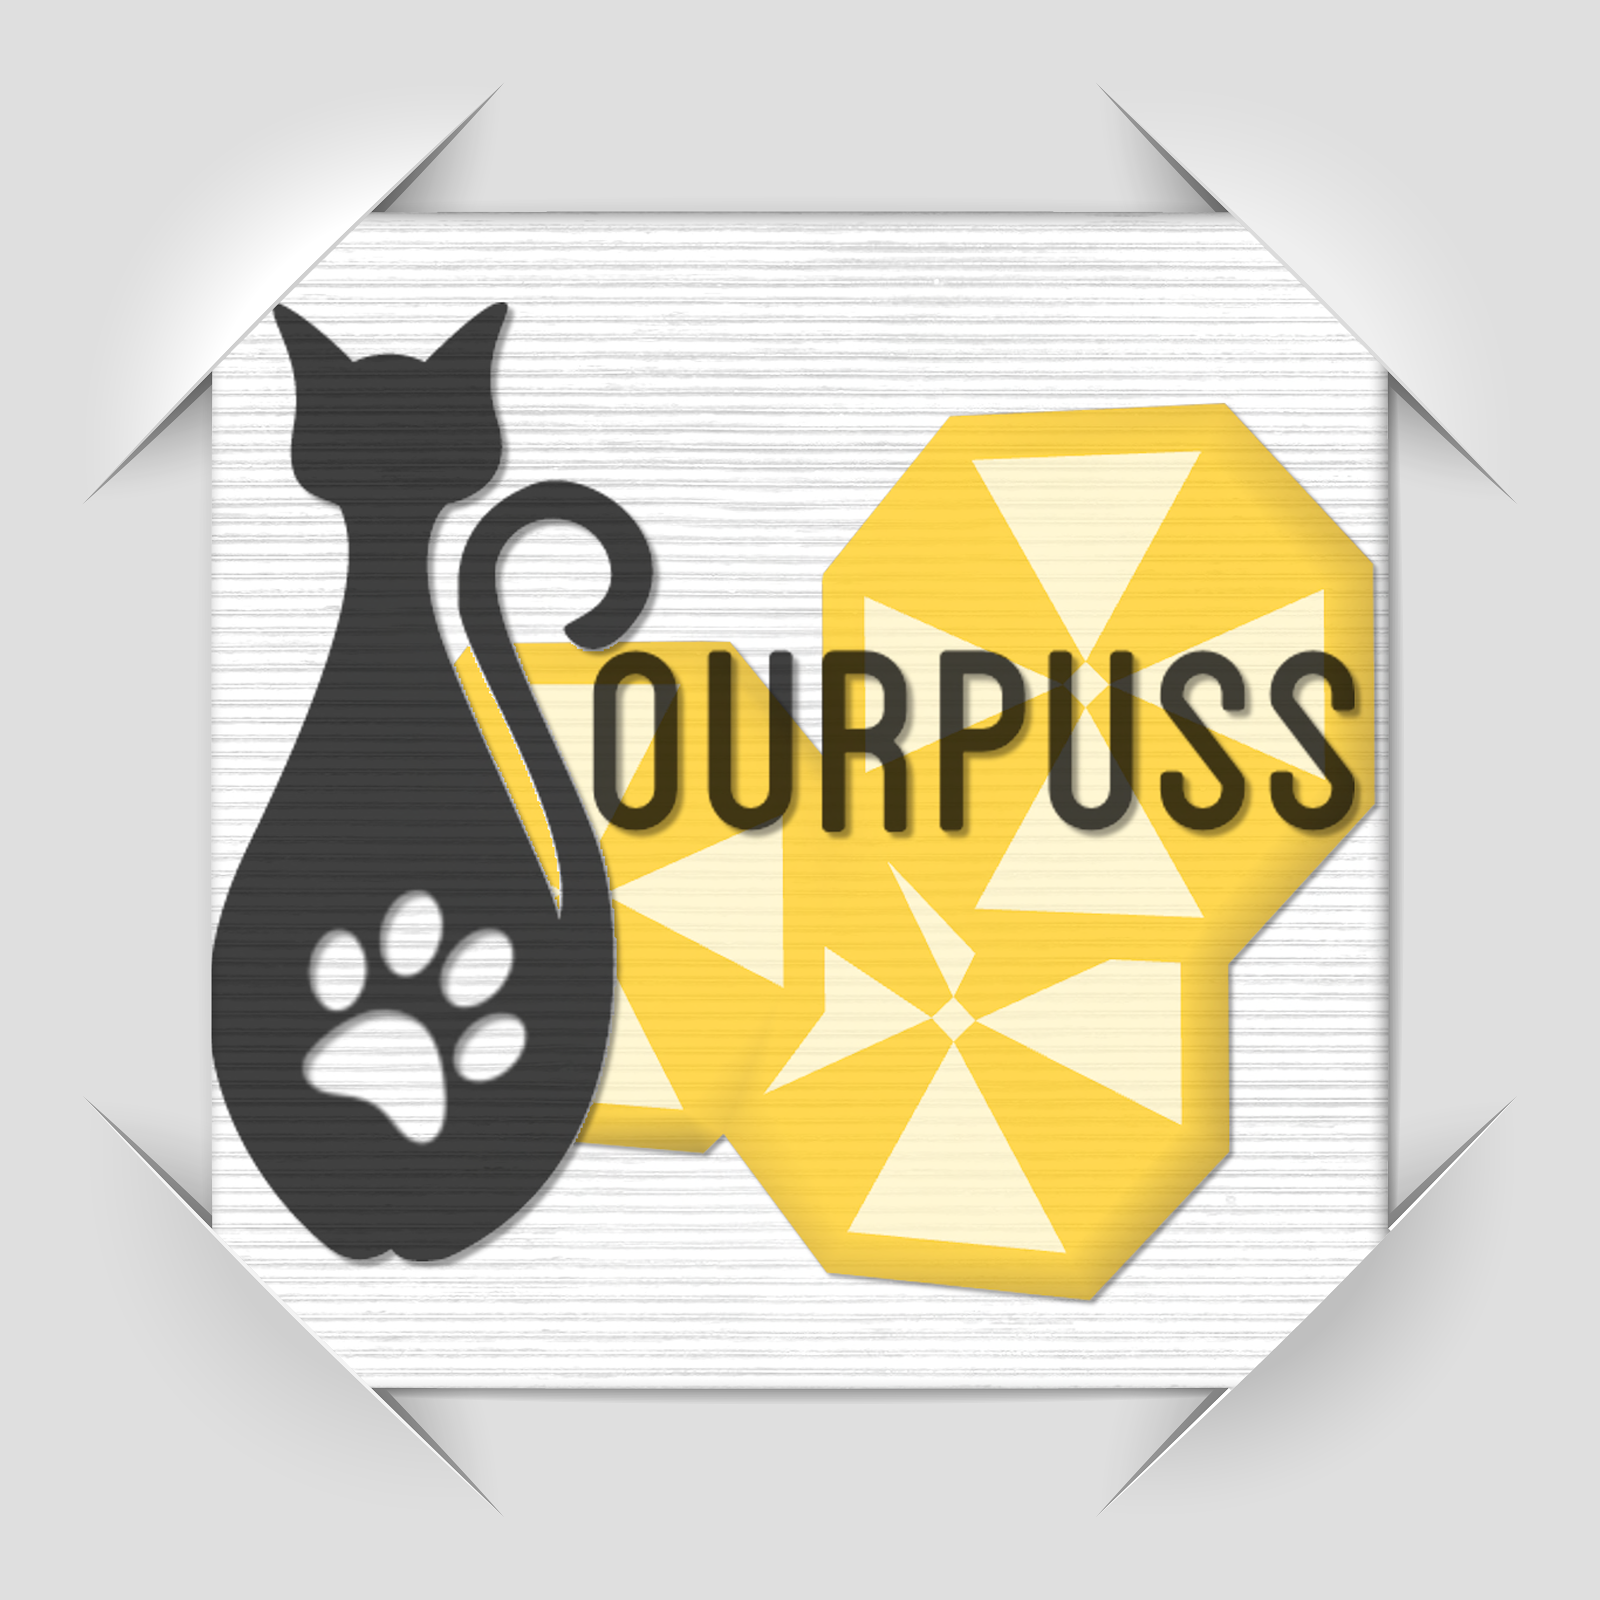 SourPuss Event